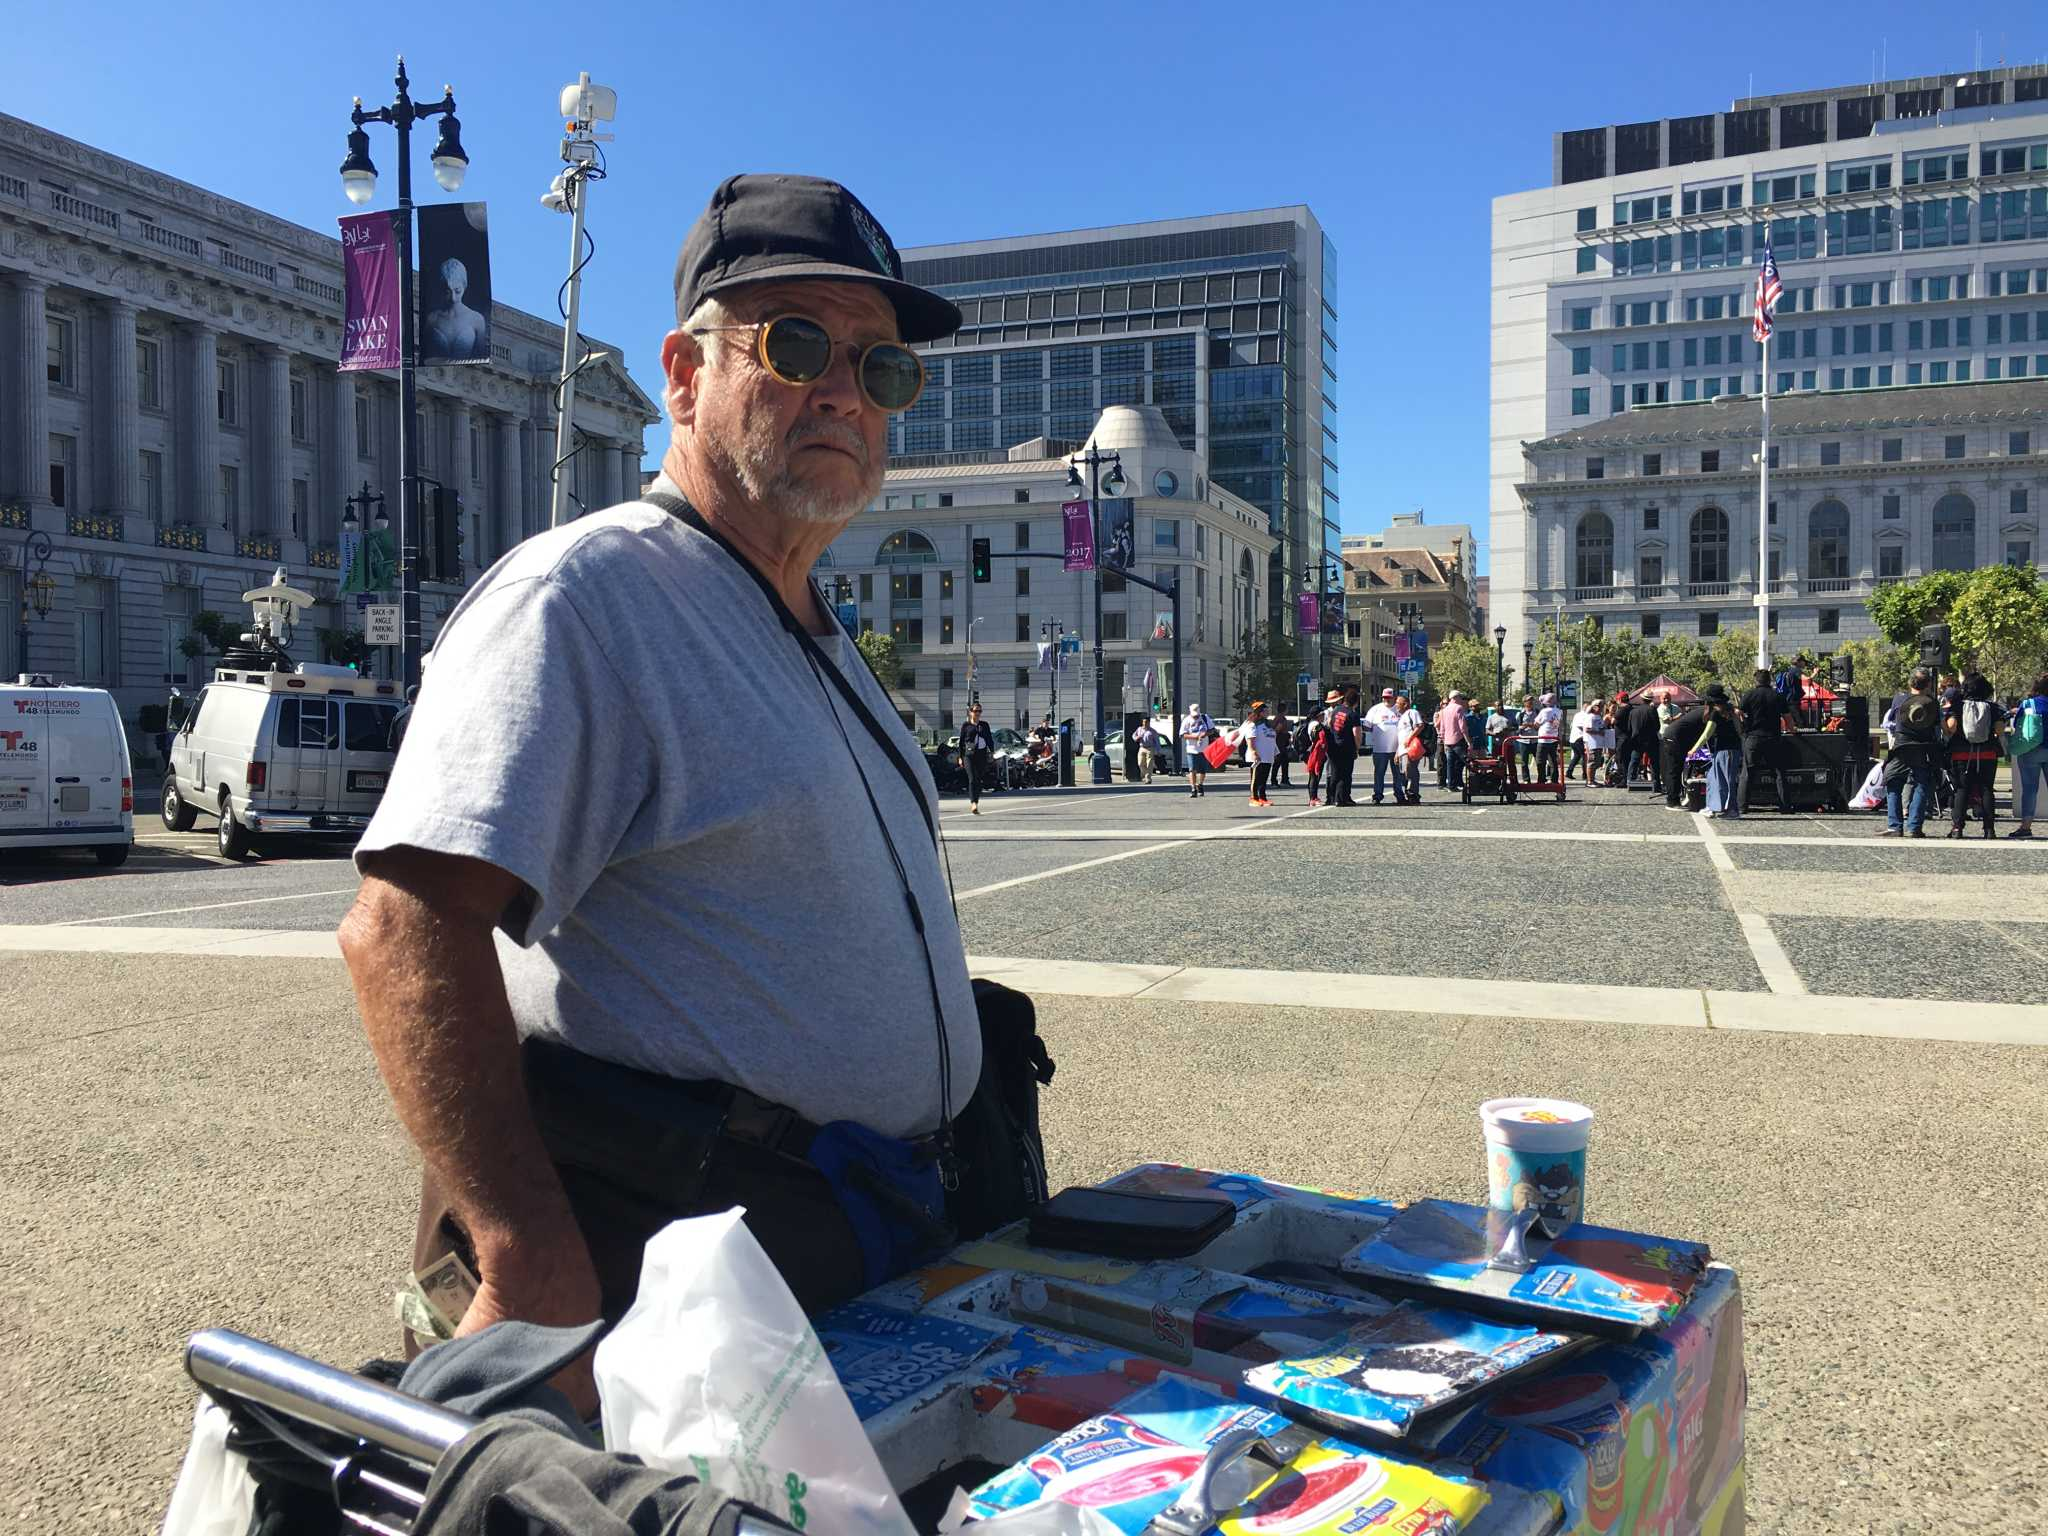 Ramiro Gutierrez Ortiz, 75, stands next to the 'A Day Without Immigrants' protest in front of City Hall with his ice cream cart on May 1, 2017. (Gracie Ngo)